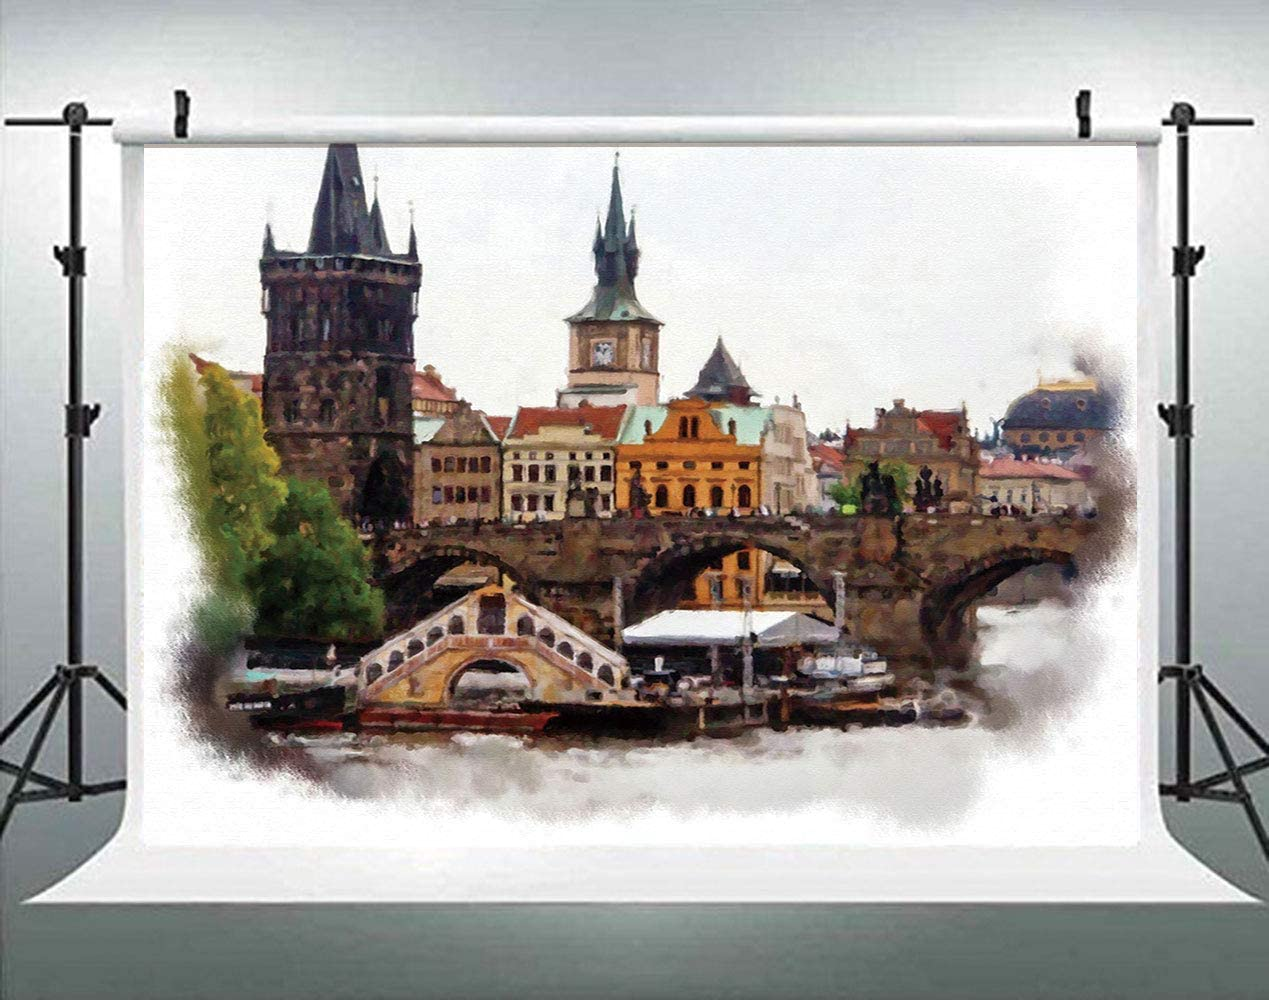 ALUONI 5x3ft Scenery Decor,European Country Landscape with Houses and River Backdrop for Photography Photo Background Props Photography AM028782